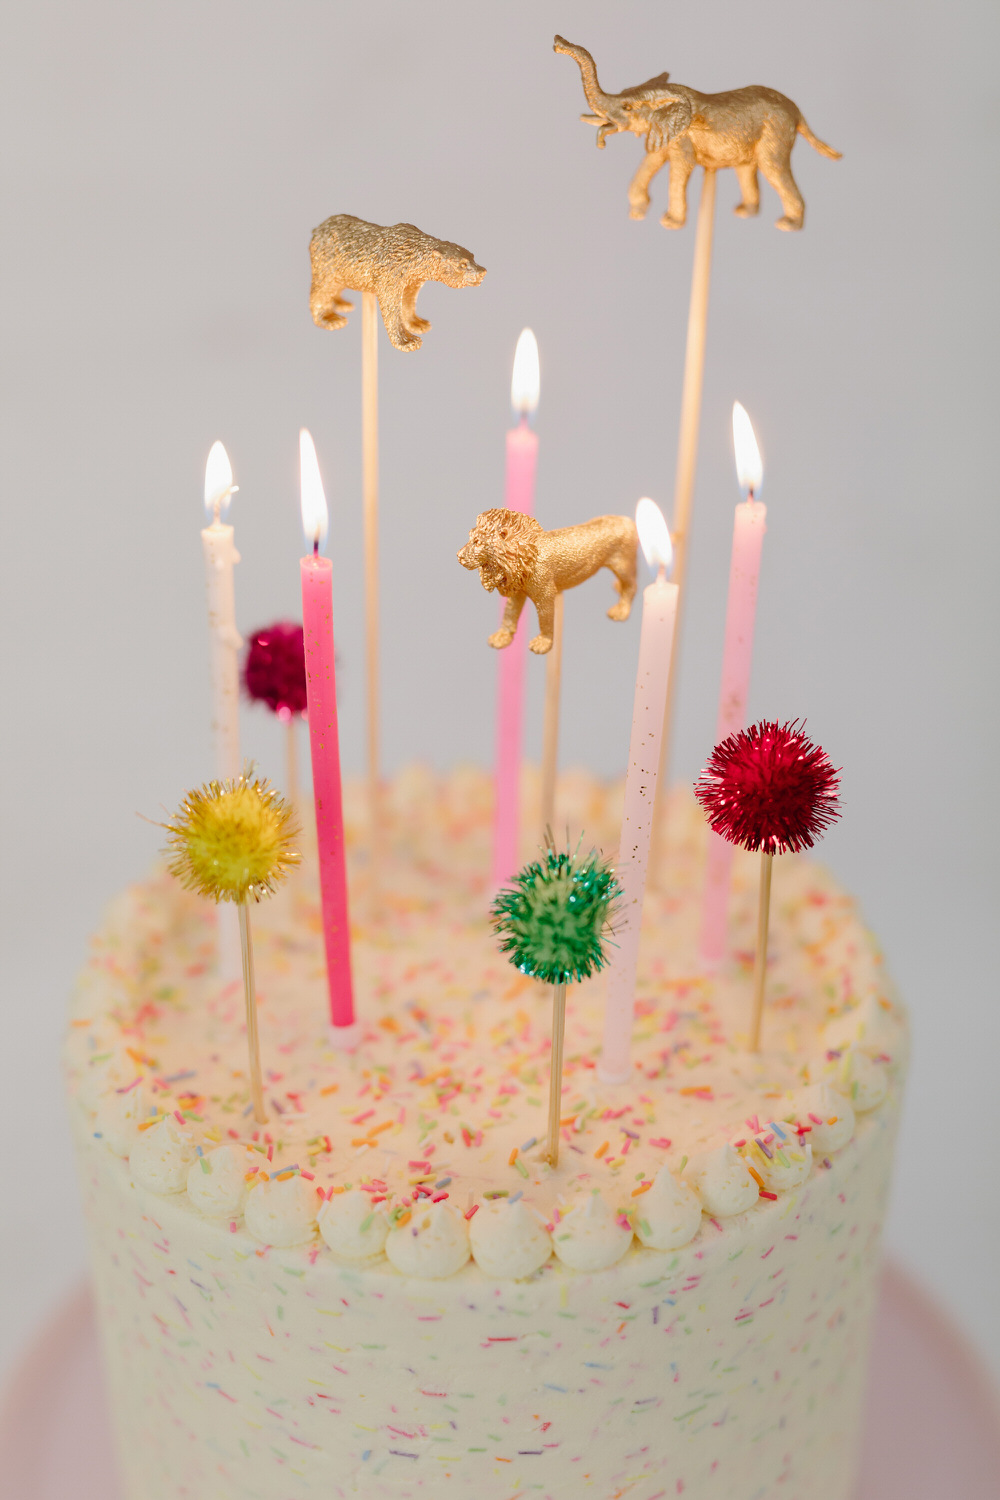 glasgow-food-photography-cake-big-bear-bakery-birthday-6